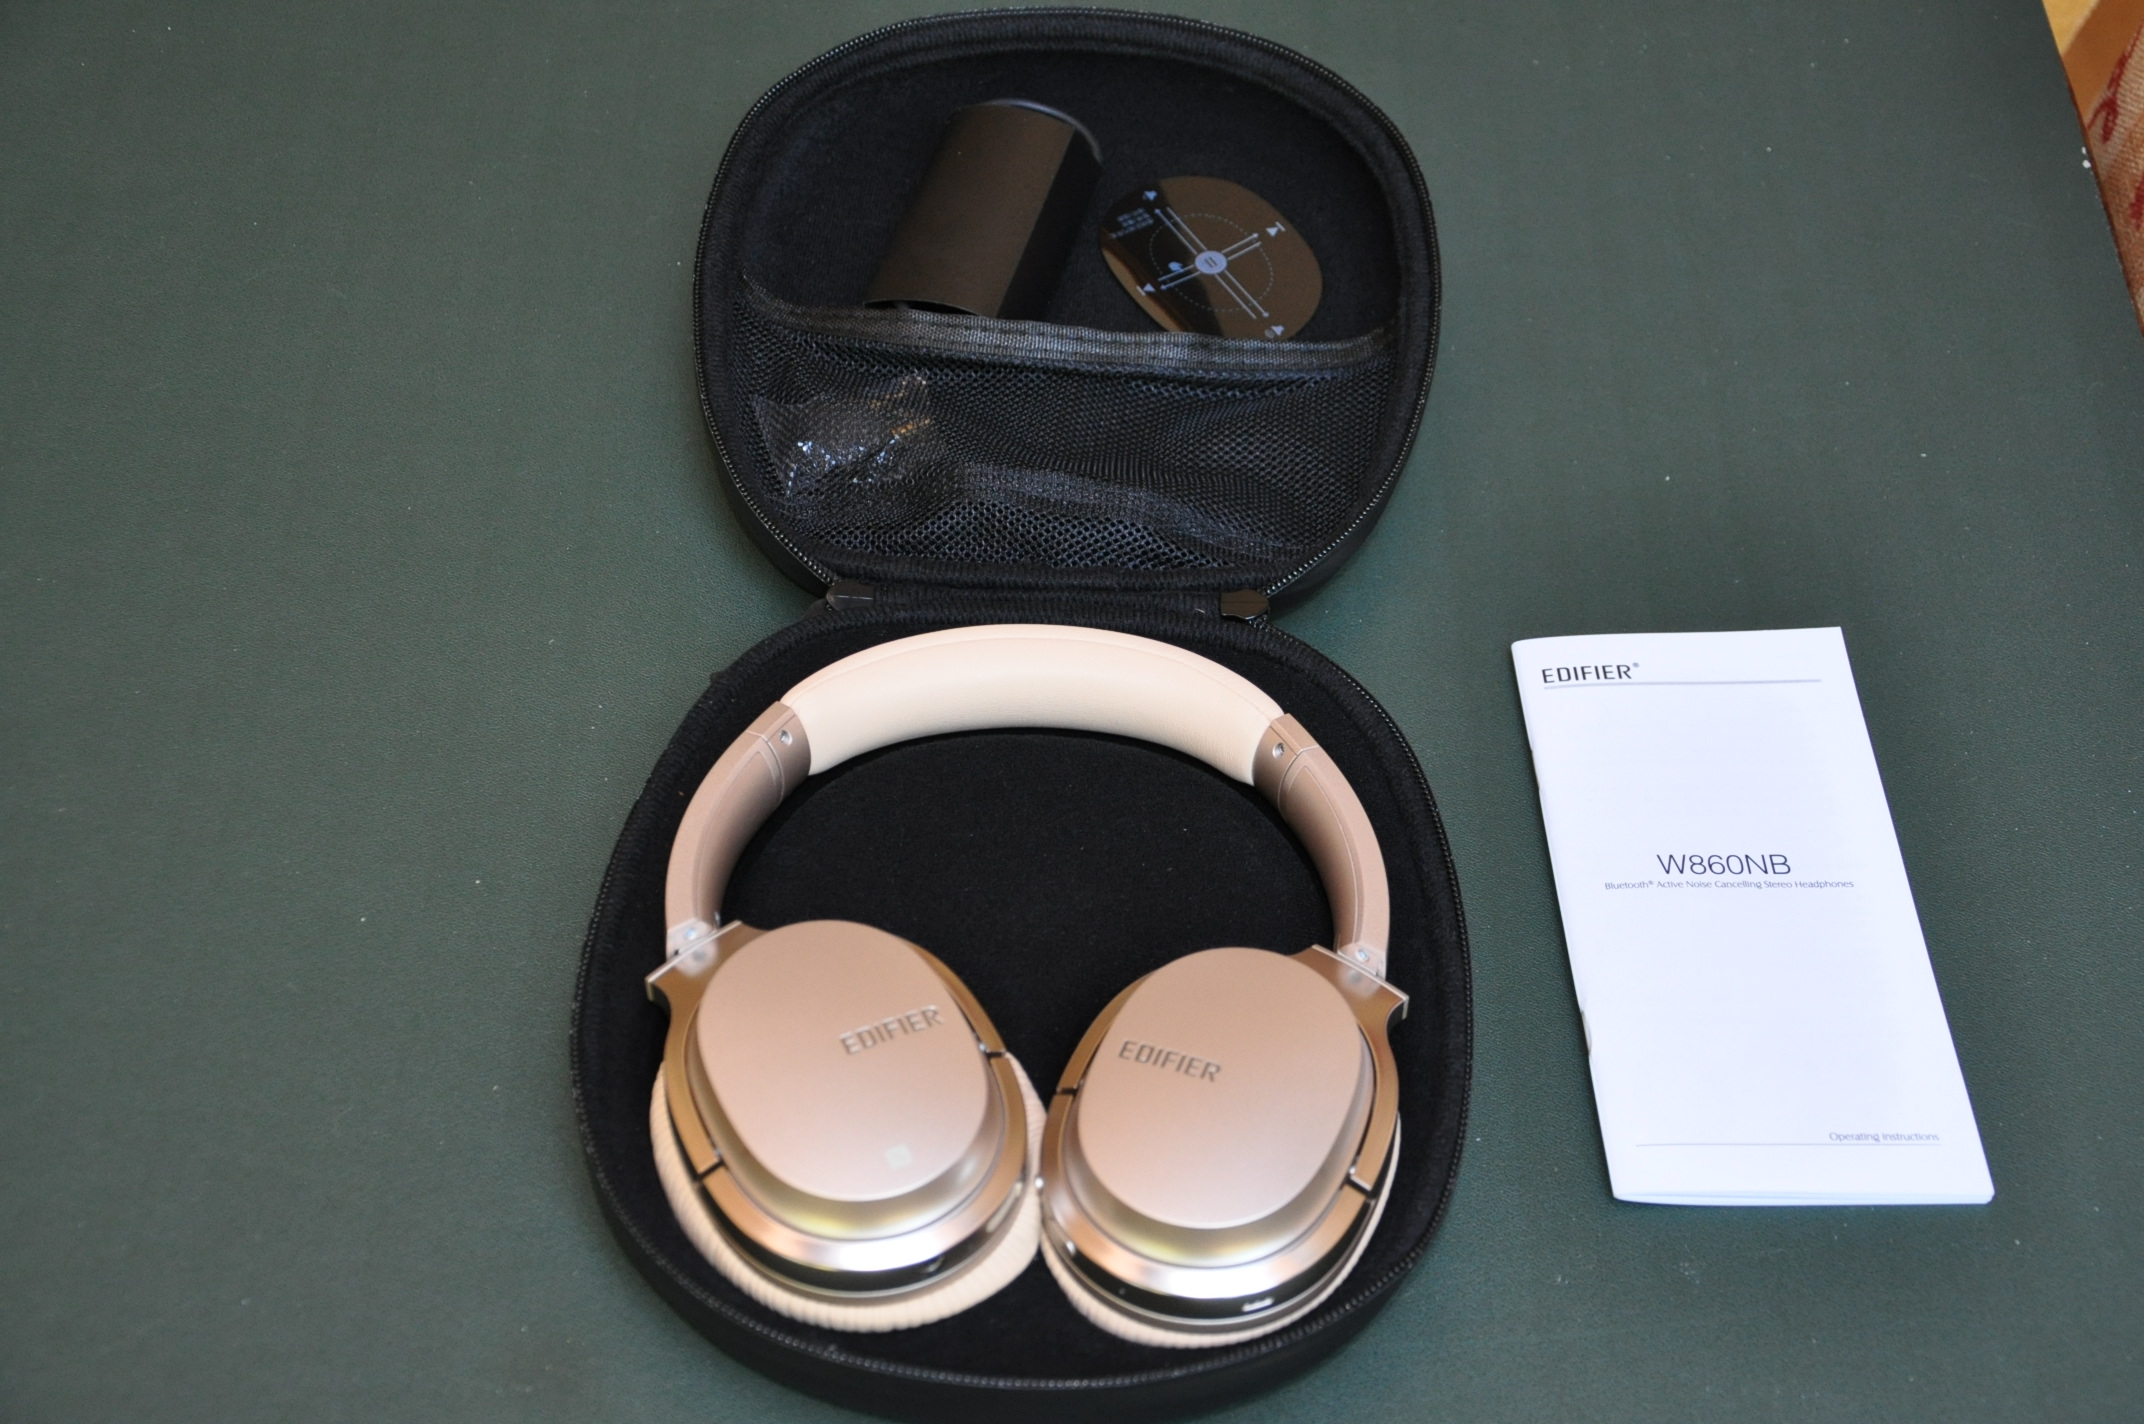 0073e4ac30b Edifier W860NB This Review is of these Edifier W860NB headphones, they are  4.1 Bluetooth active noise cancelling ...